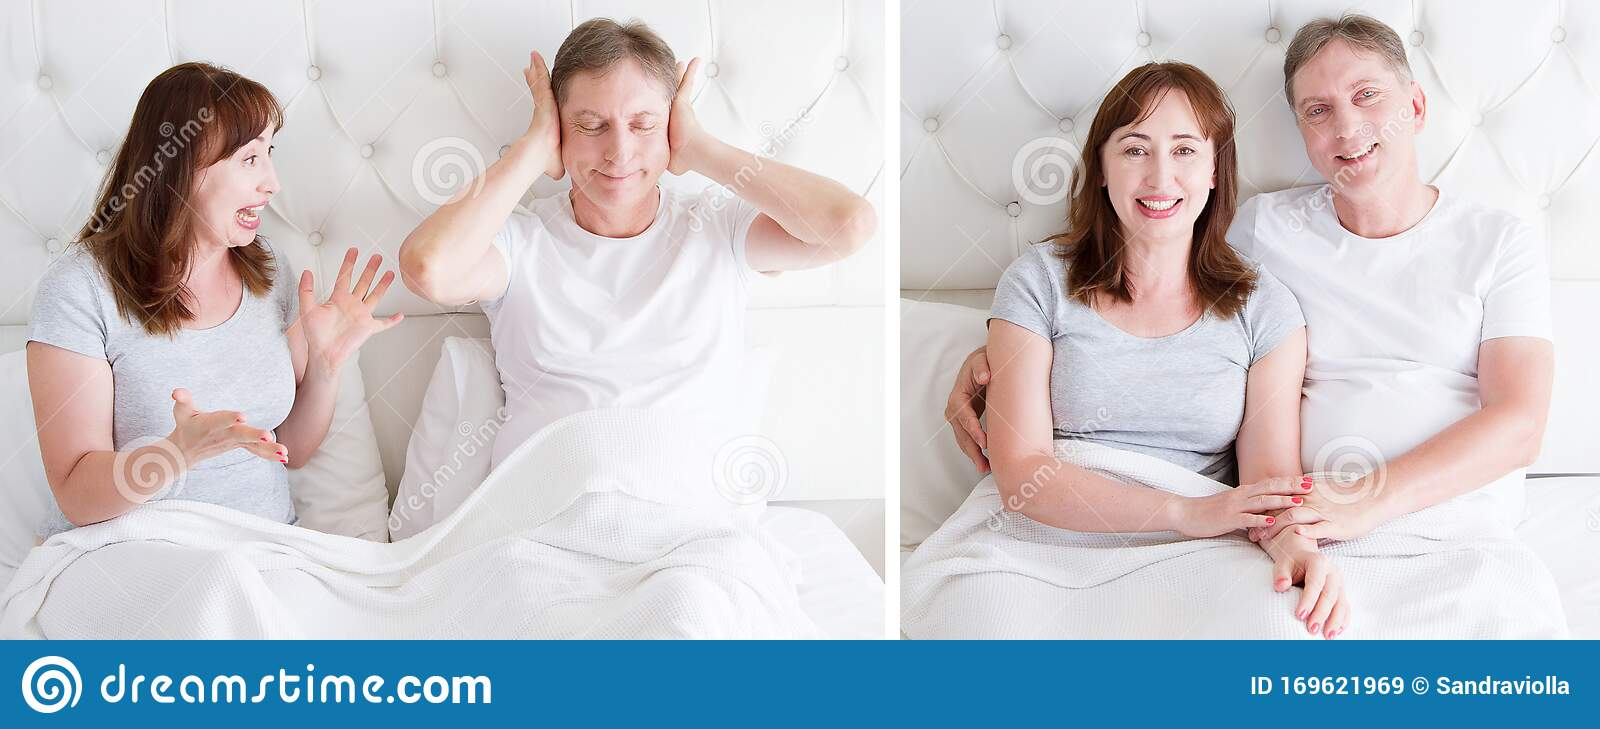 Banner Before After Psychologist Middle Age Couple With Quarrel Problem Relationship Before After Family Life Love And Happiness Stock Image Image Of Crisis Angry 169621969